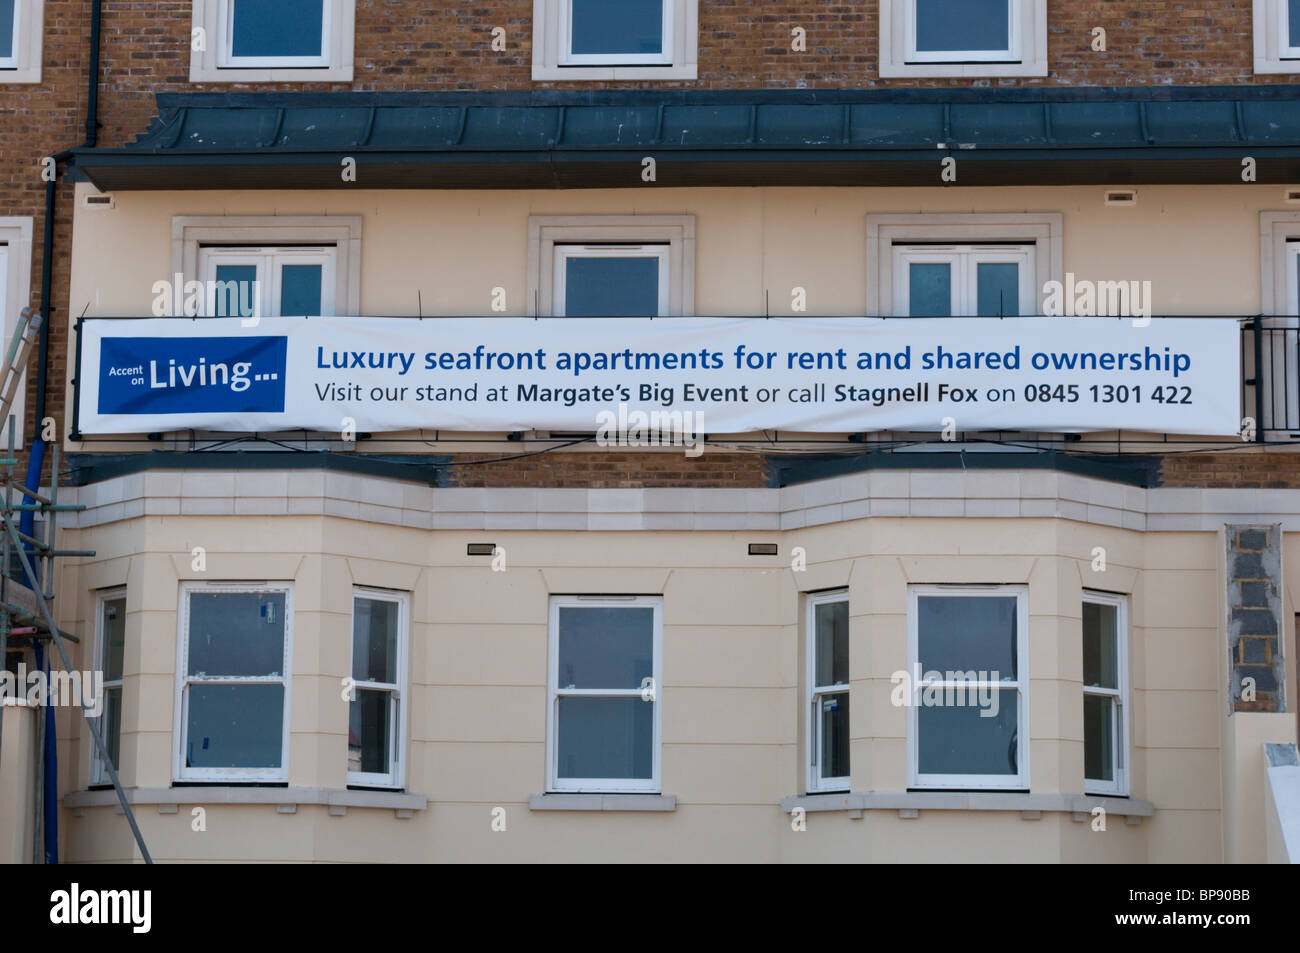 Apartments For Rent In Margate Kent England Stock Photo 30930687